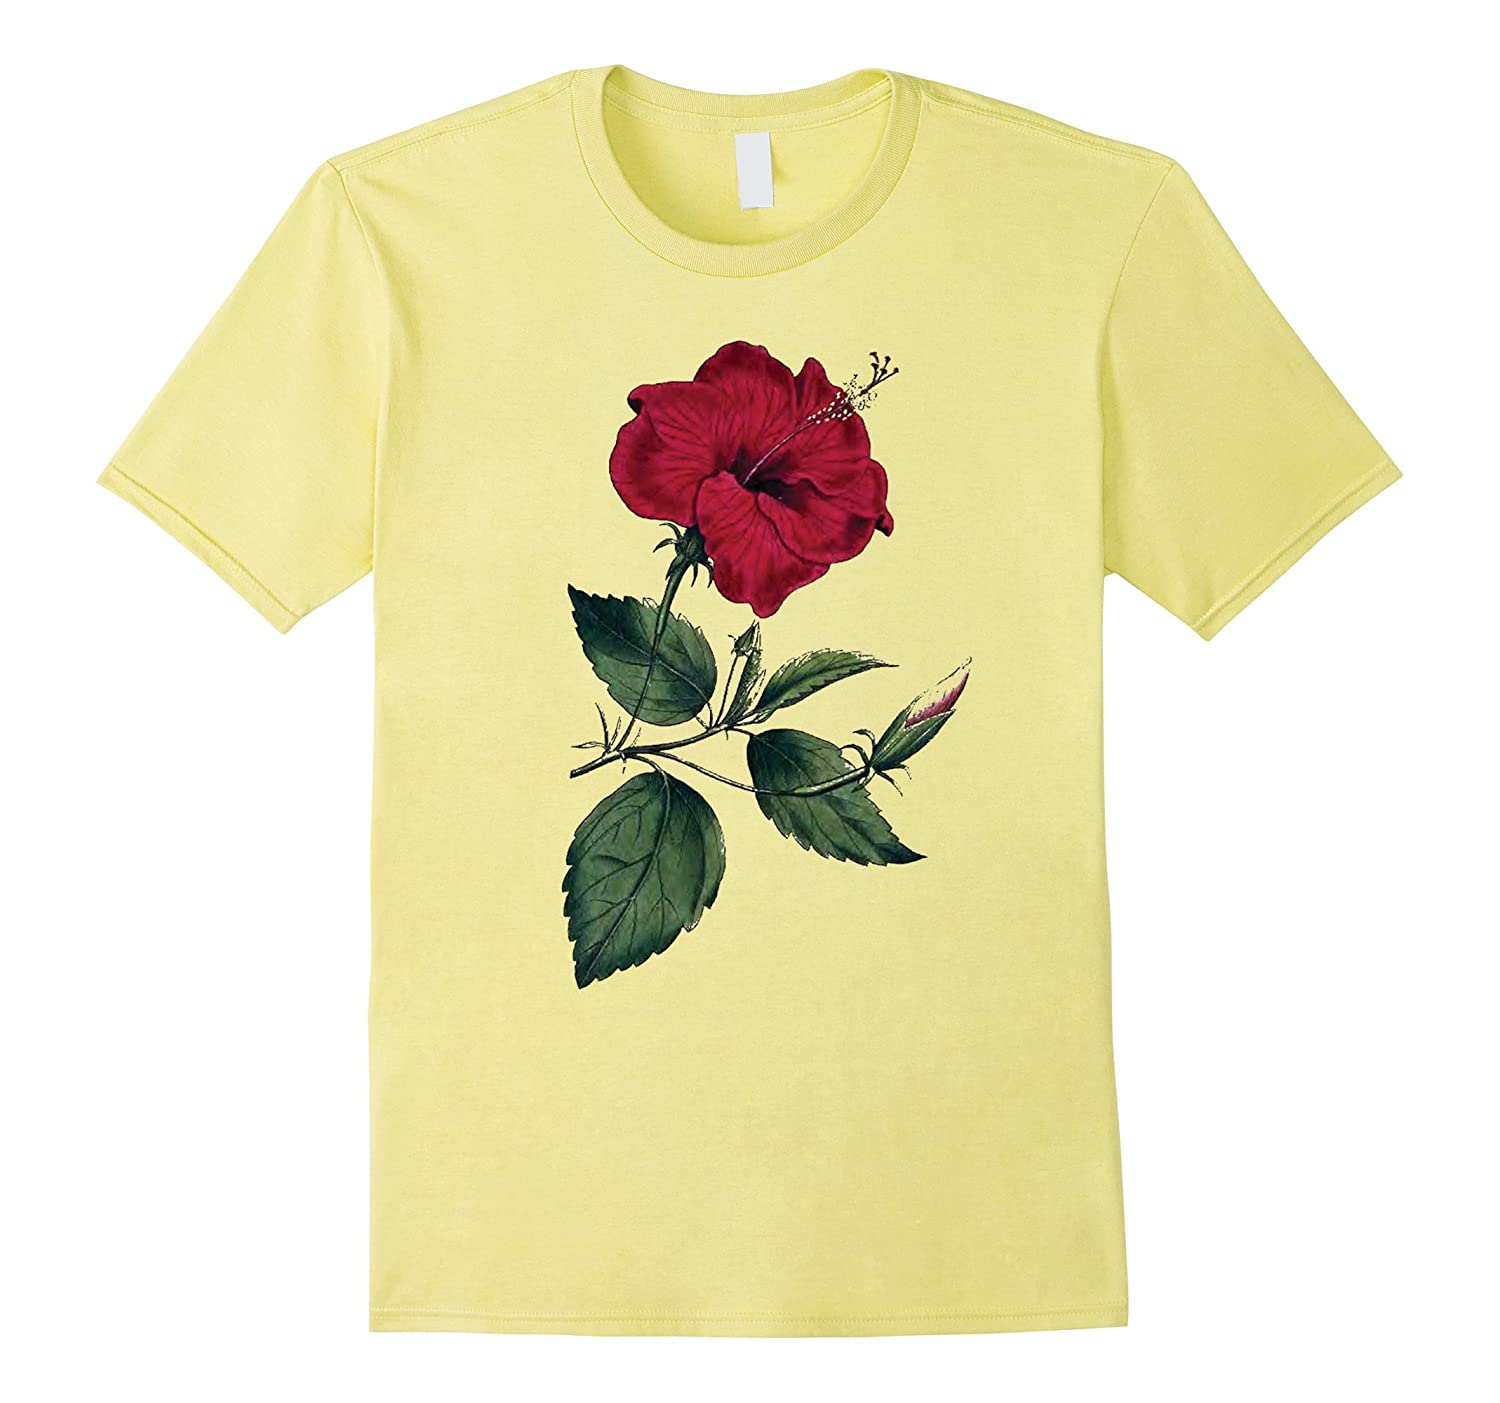 Vintage Graphic Flower T-shirt-Art